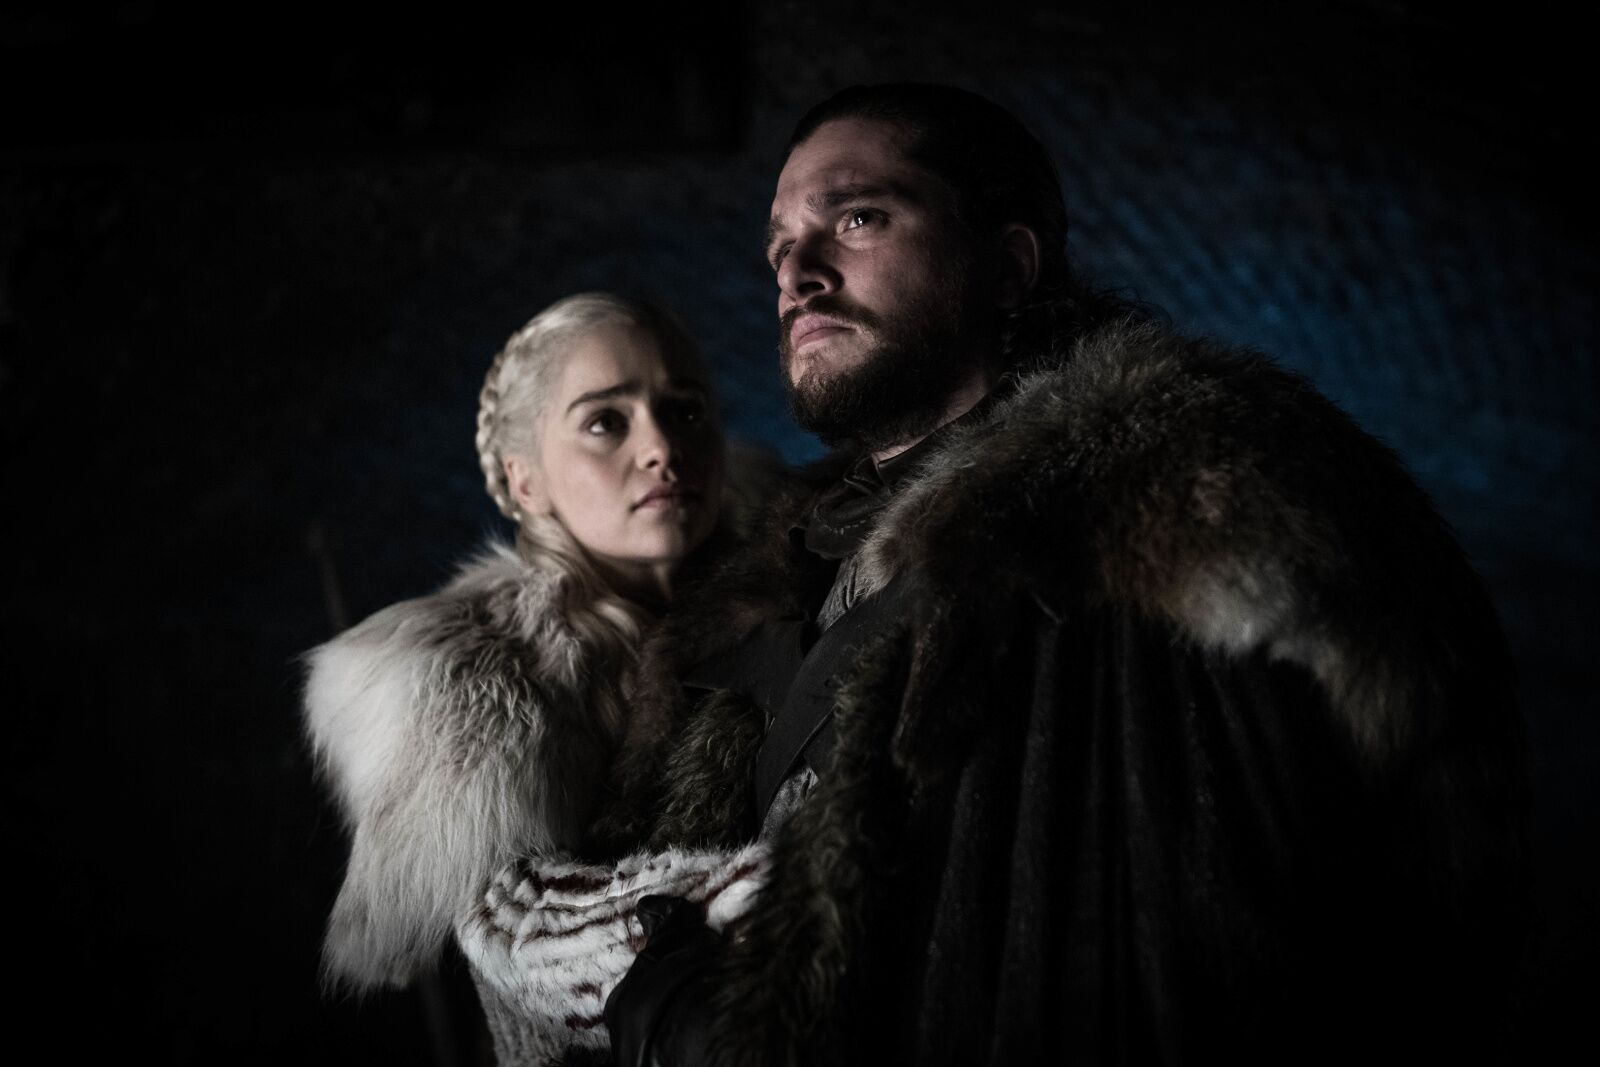 Game of Thrones Death of the Week: Jon and Dany's relationship